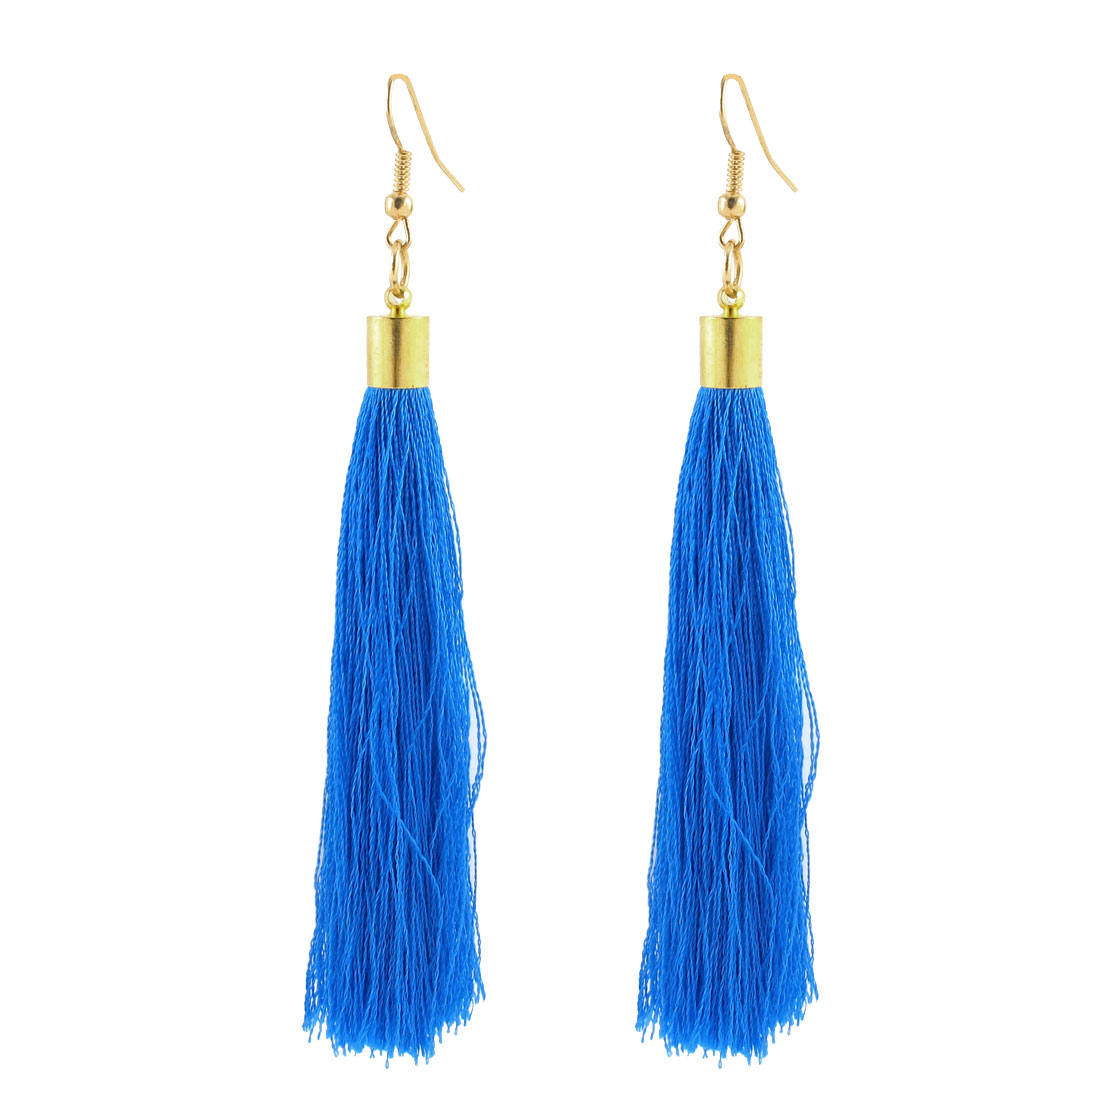 Woman Decoration Mini Bead Decor Hook Tassel Pendant Dangler Earrings Pair Blue